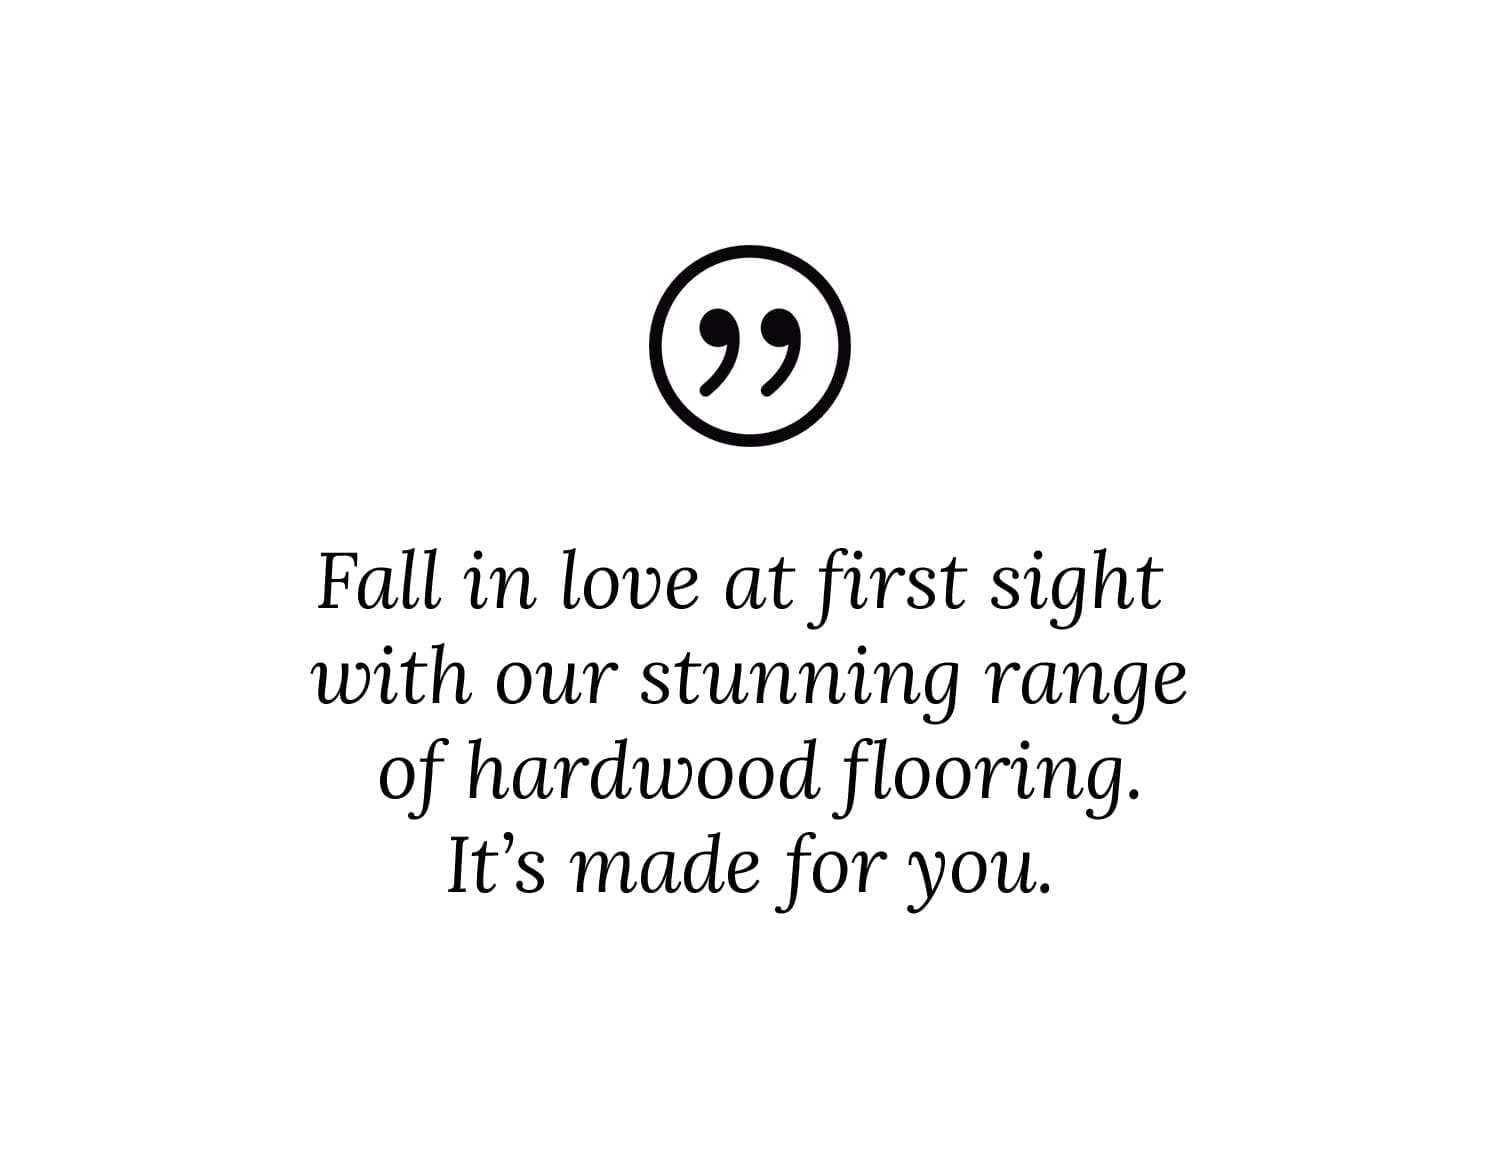 Forestry Timber-Fall in love at first sight